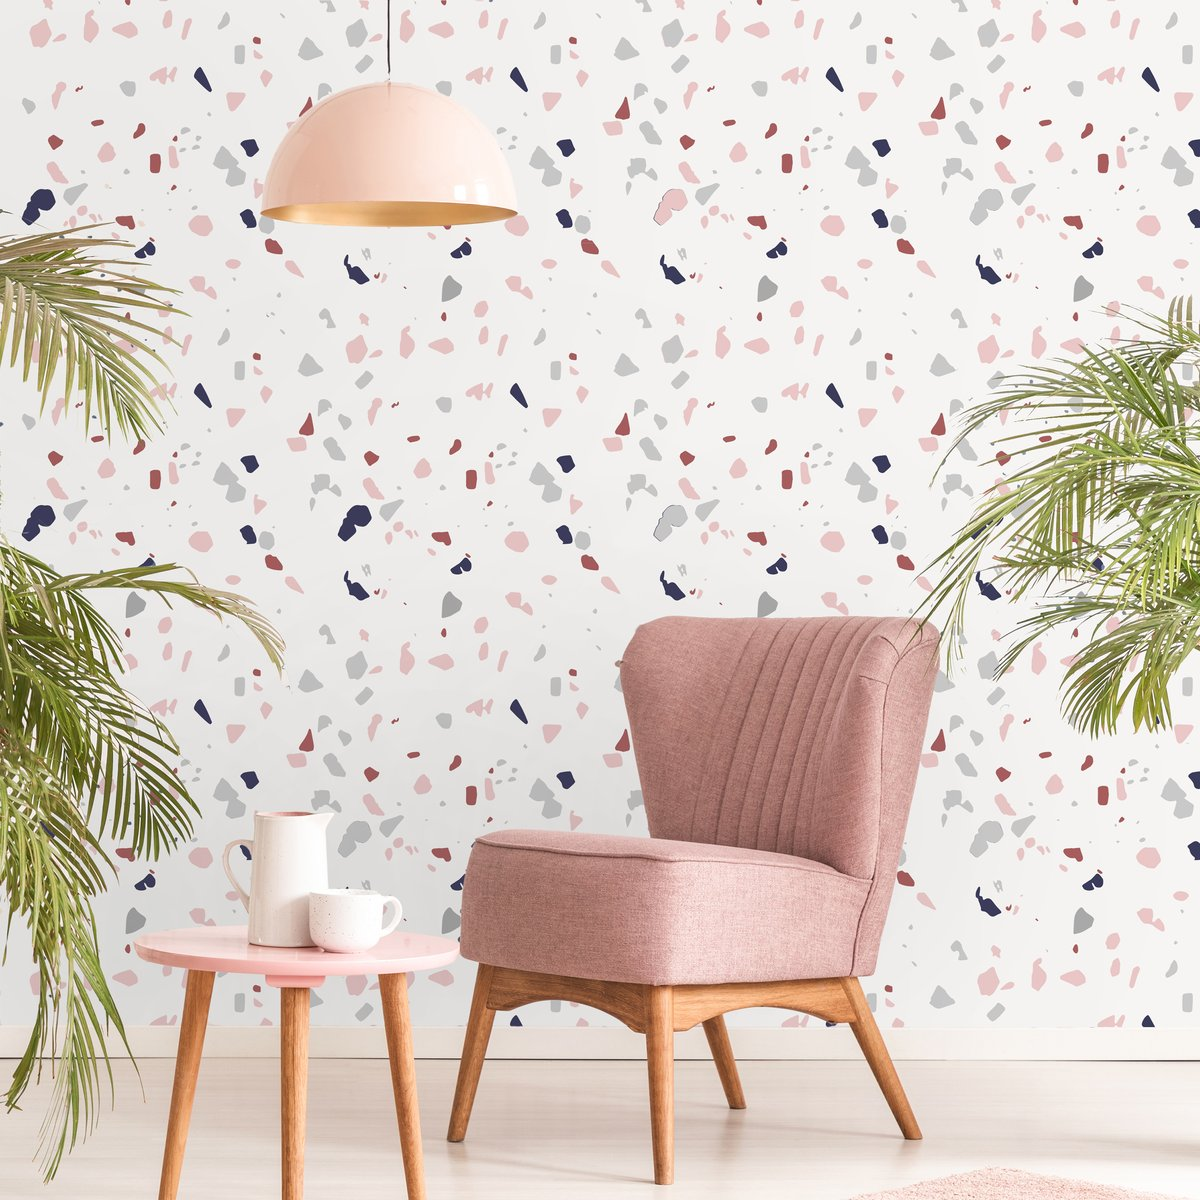 Pink lamp above wooden table and armchair in pastel living room interior with plants. Real photo